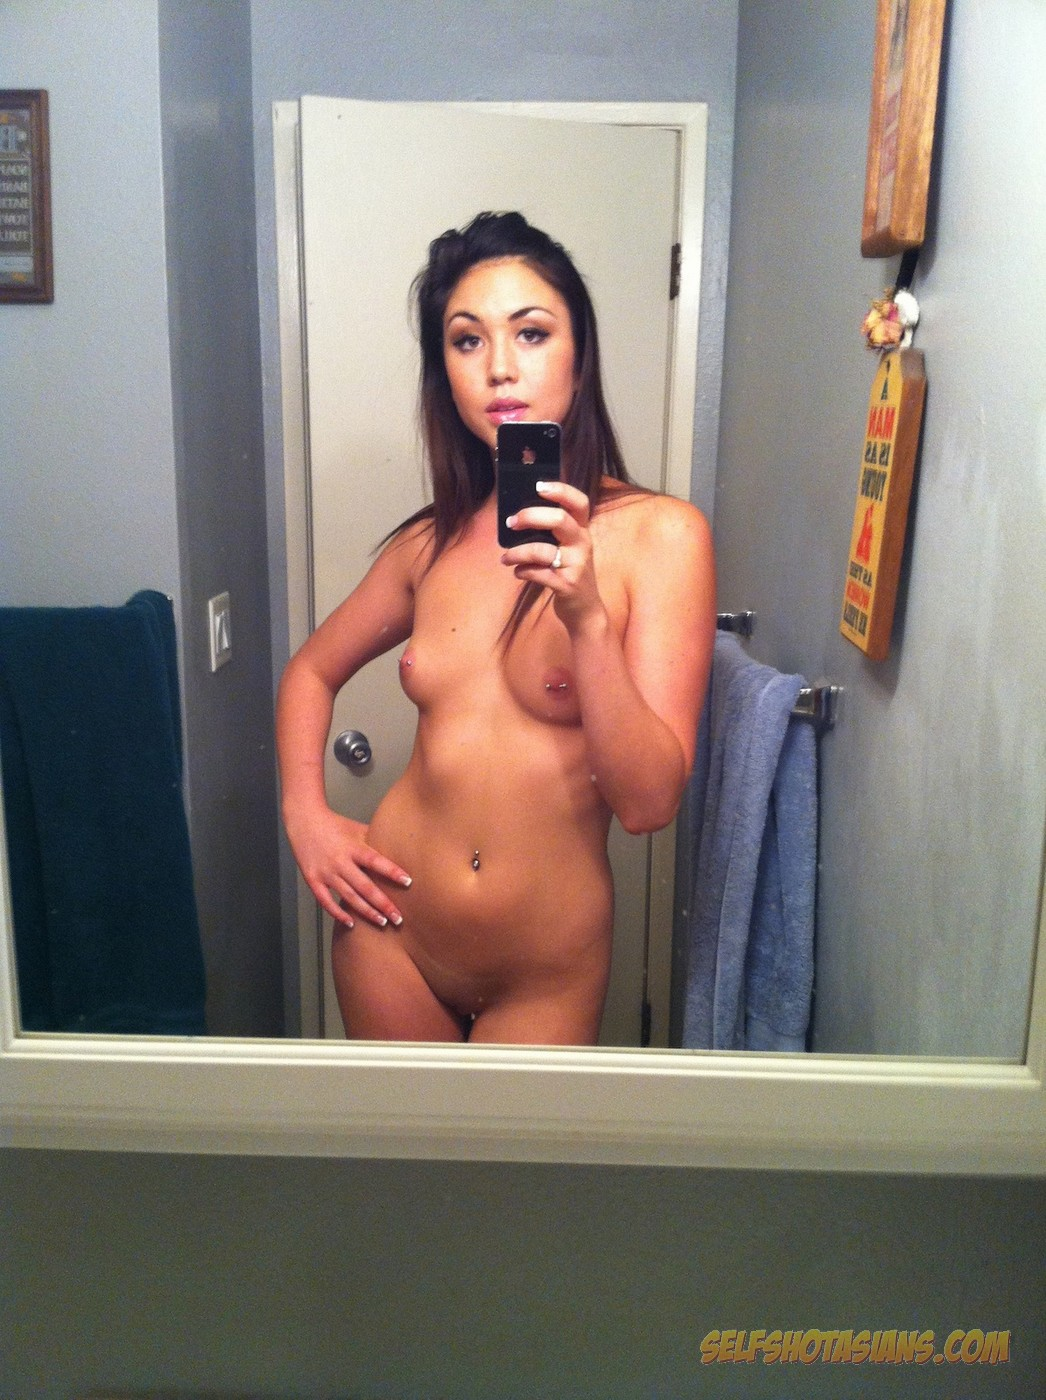 Remarkable, very nude selfie asian girl with tattoos are